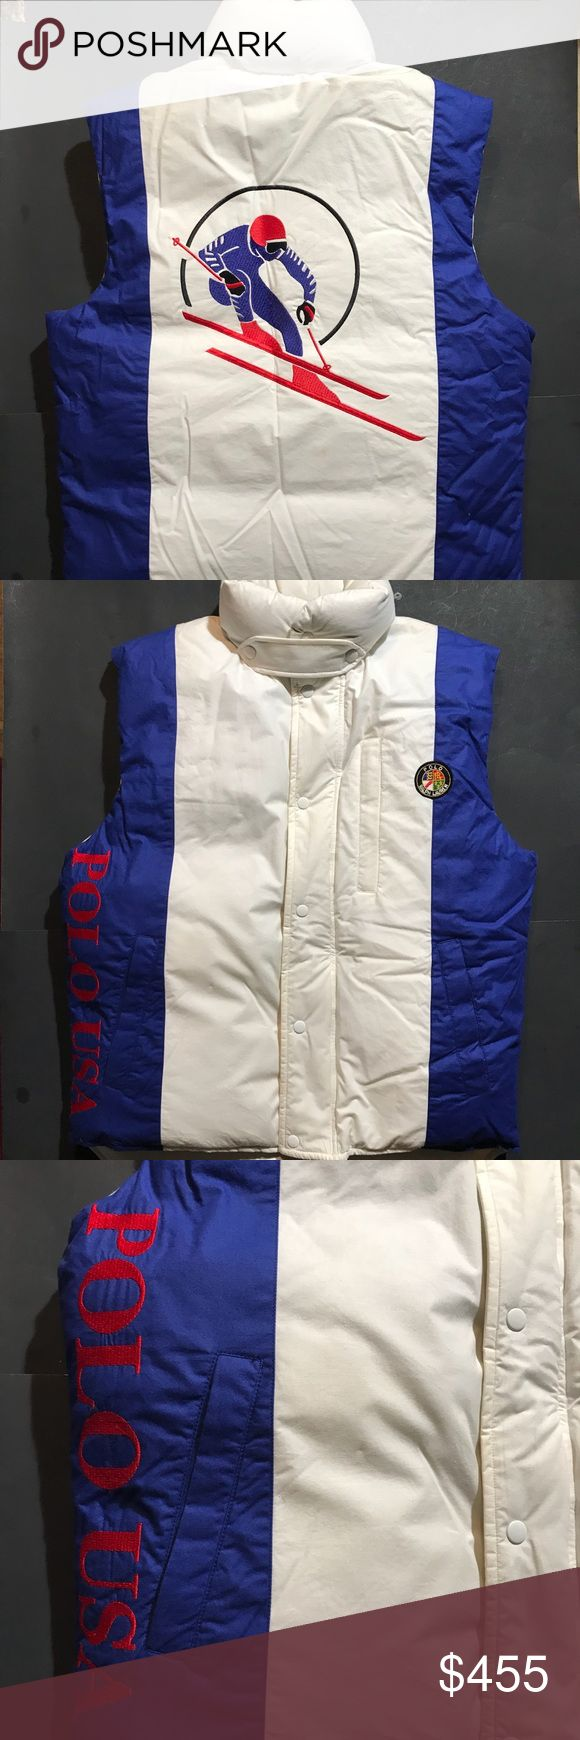 Vintage Ralph Lauren USA Ski Vest! Collectors item Up for sale is a used VINTAGE - Ralph Lauren Polo USA Circule Ski Vest Size: Adult Medium (M) This is an Official Ralph Lauren Polo Apparel, not a cheap knock off!  Measurements:  Pit to pit: 24 Inches Back collar to bottom: 24 Inches  Jacket is in good used condition 8.5/10 but none noticeable while worn Some discoloration No rips or tears All colors bright & vibrant Any Questions feel free to ask! Polo by Ralph Lauren Jackets & Coats